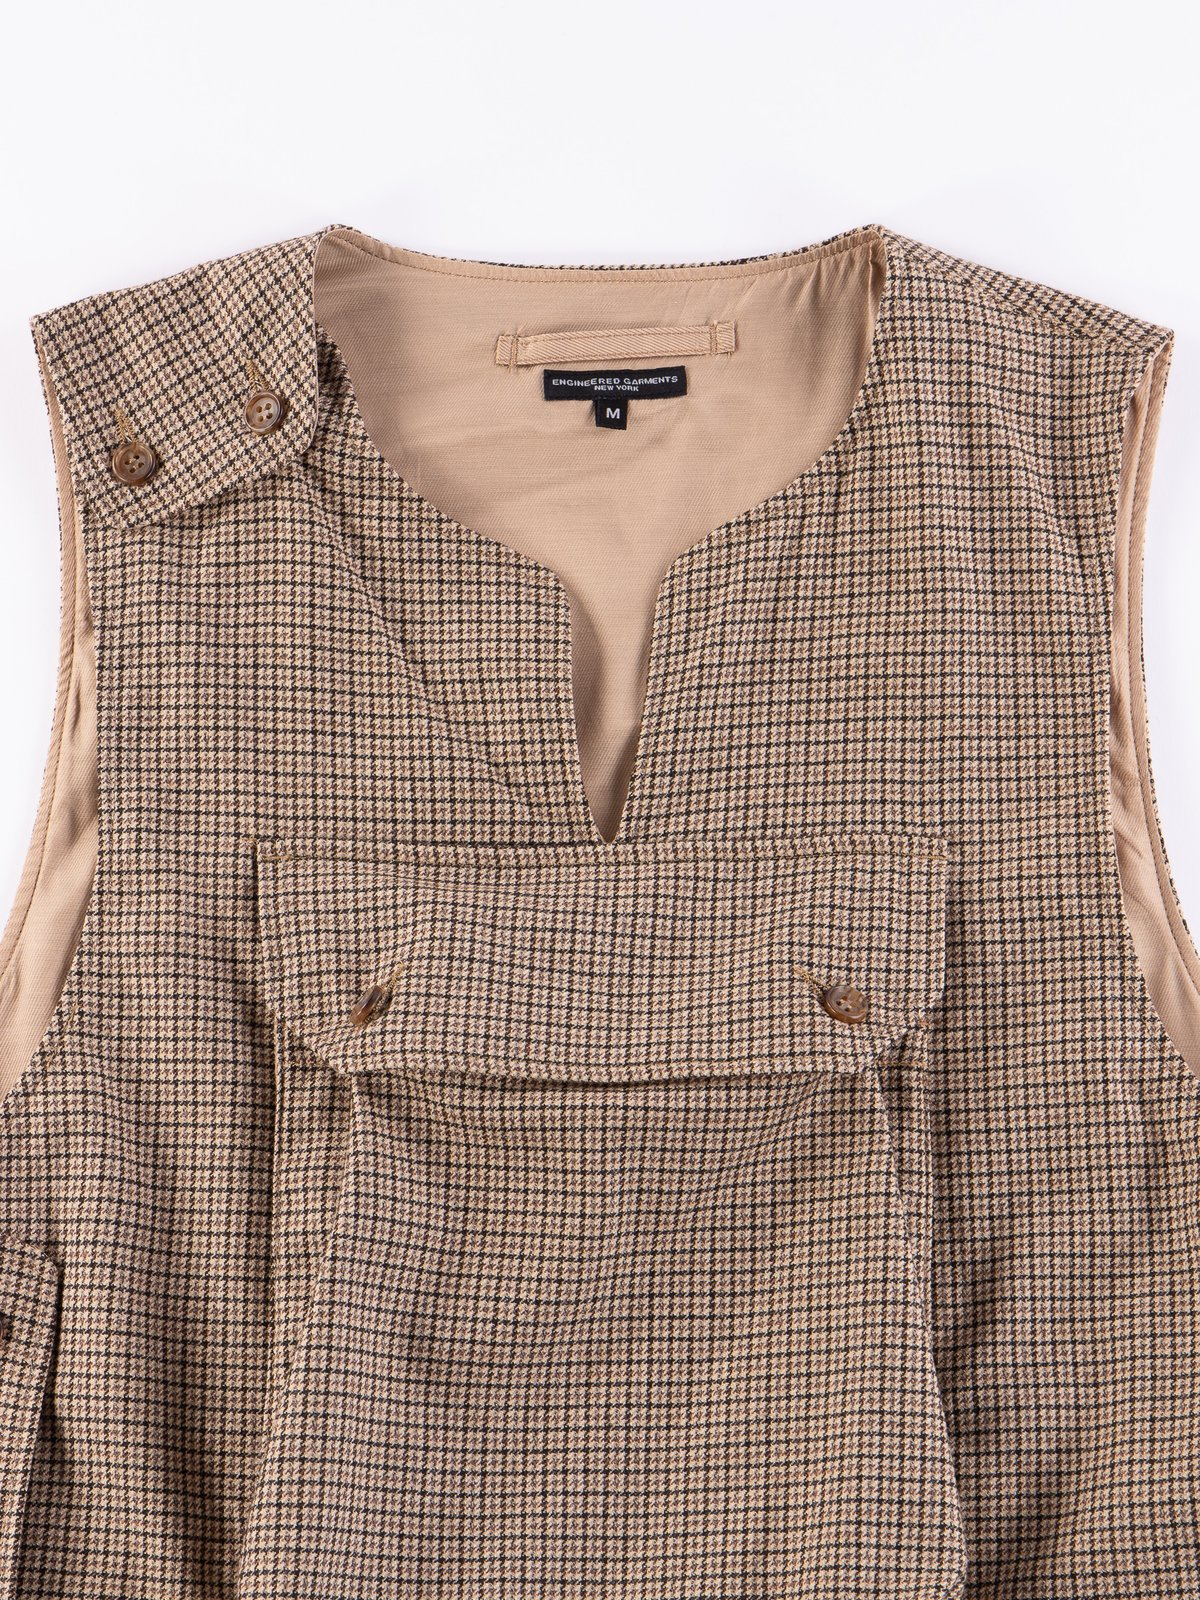 Brown Wool Poly Gunclub Check Cover Vest - Image 3